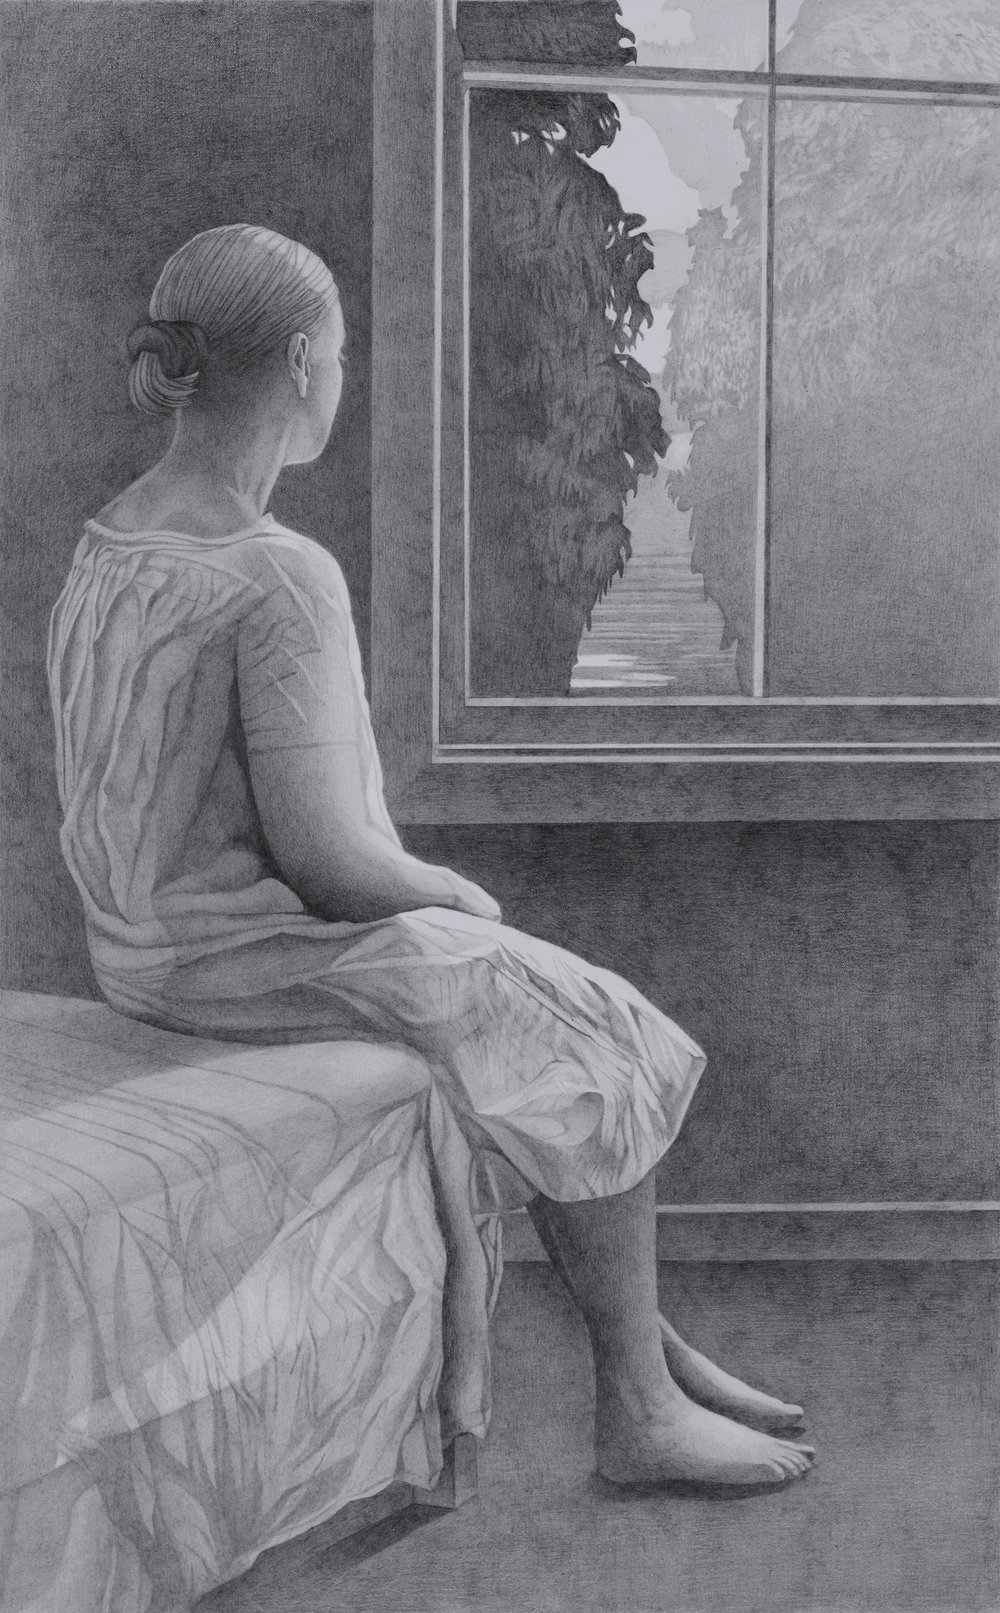 Paul Hogg, Woman at a Window, Pencil on paper, 54cmx34cm,  http://paul-hogg.com